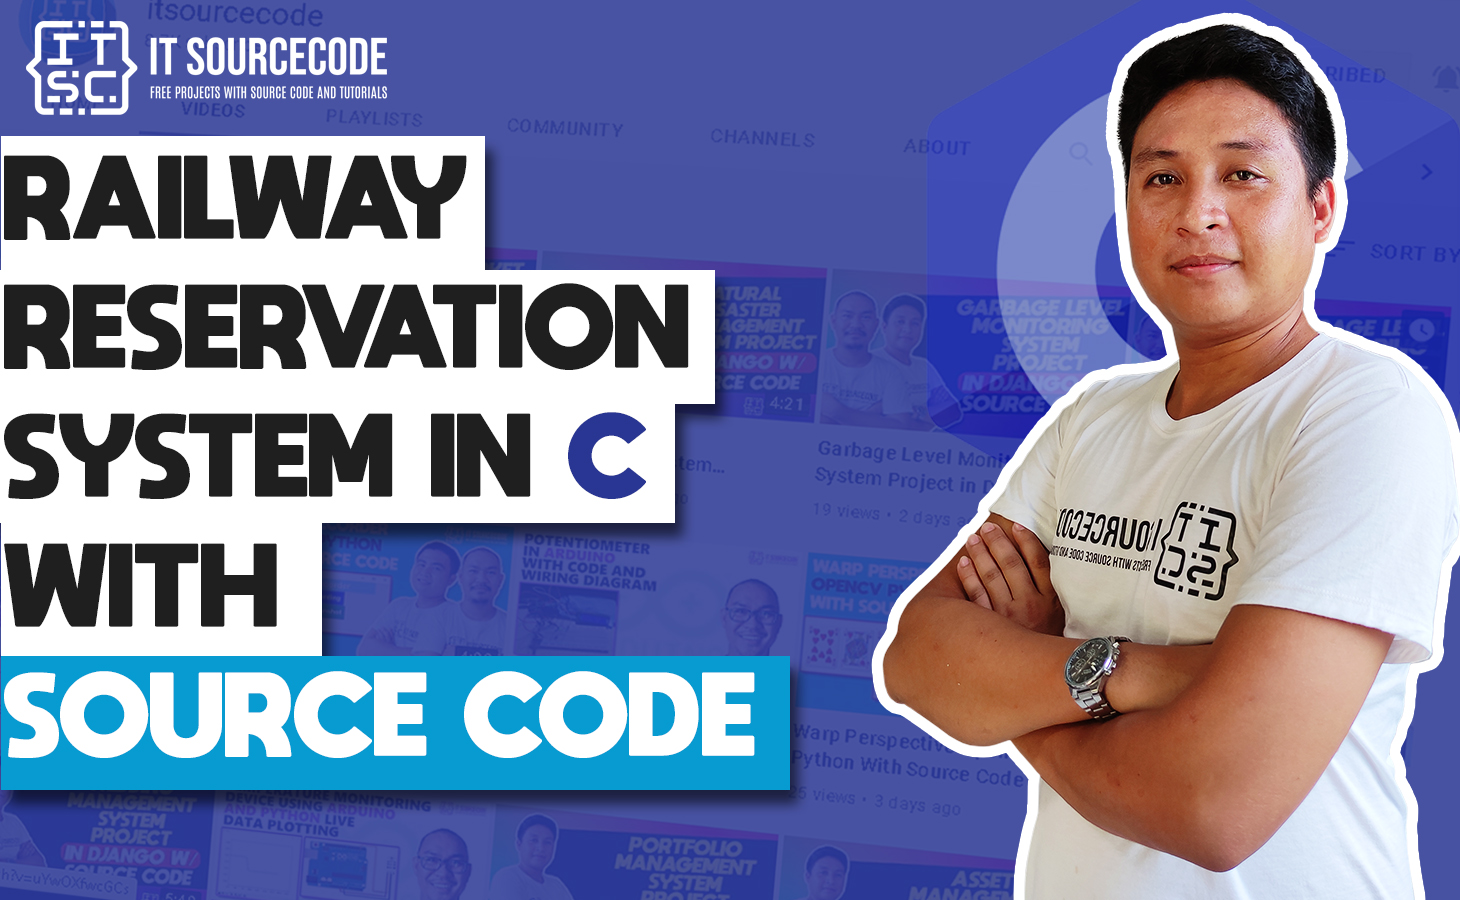 Railway Reservation System in C with Source Code